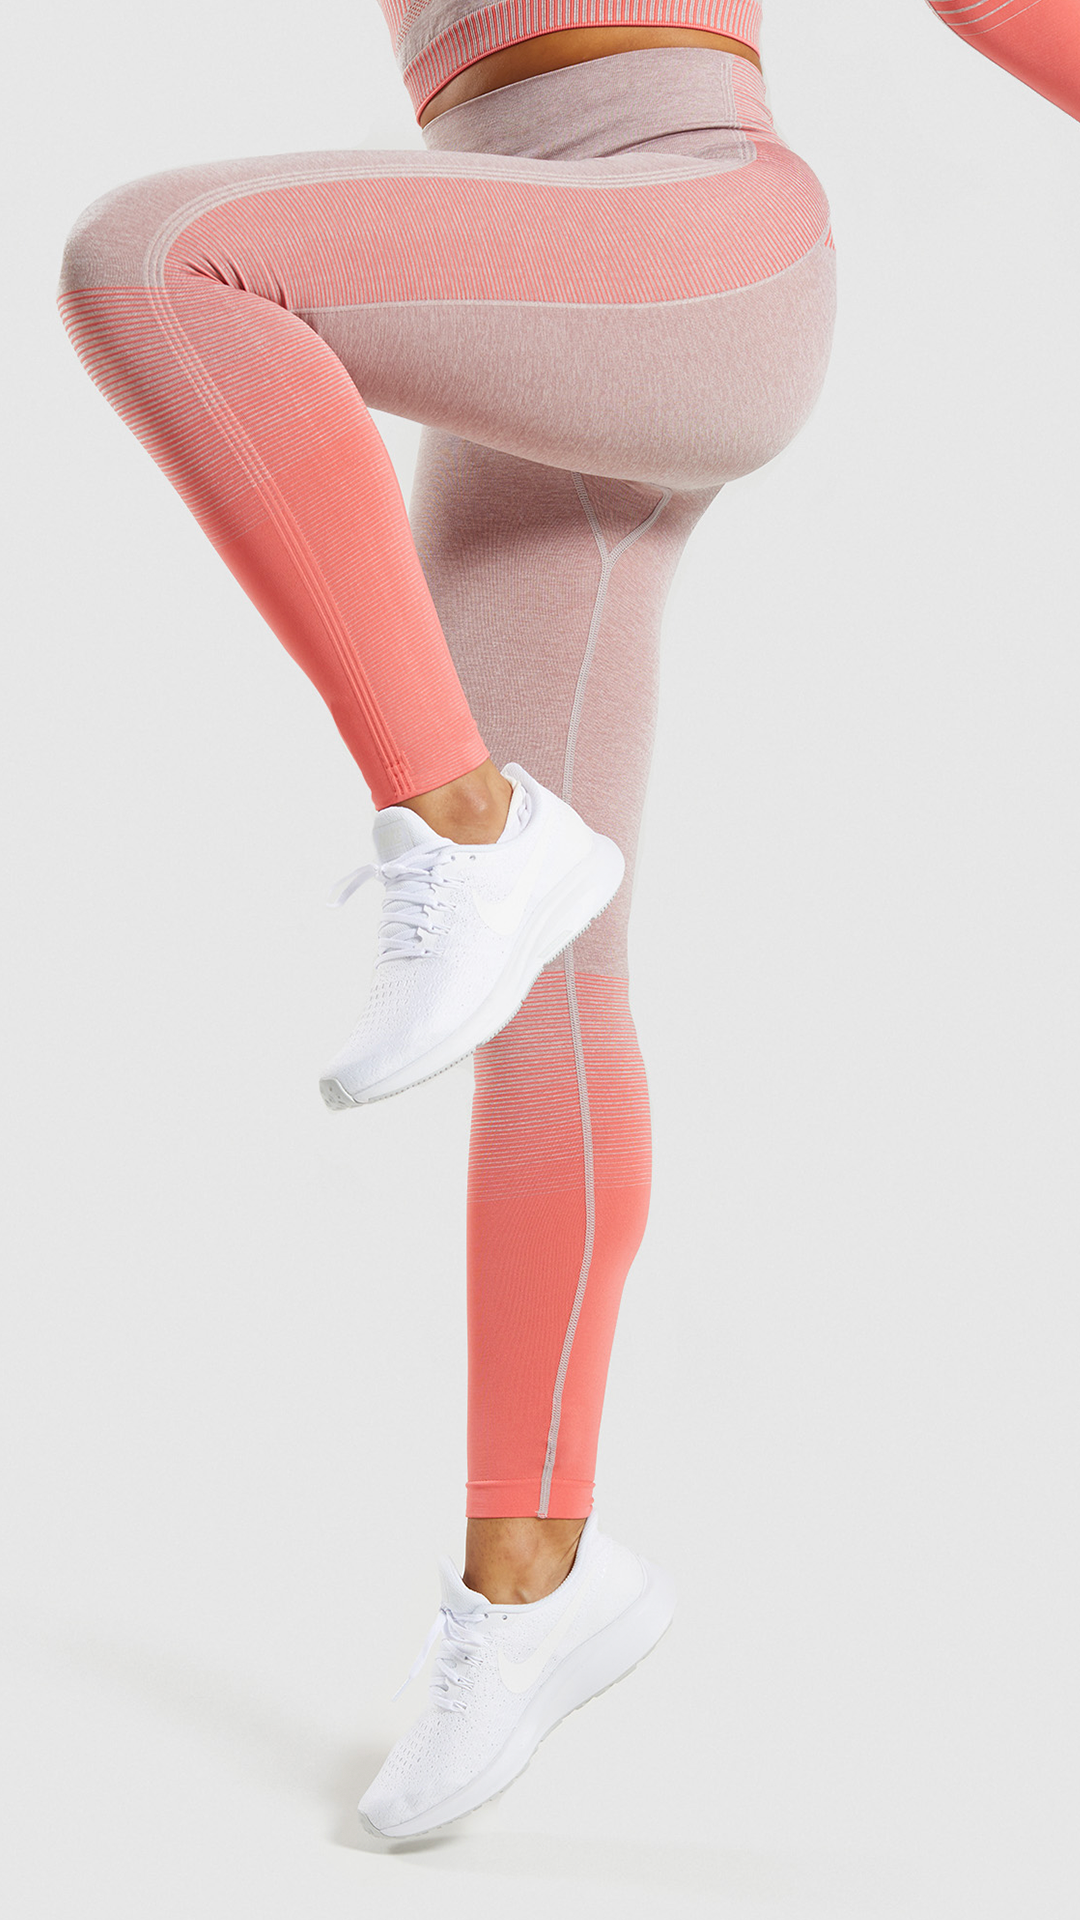 733cc8aa847c85 Colour gradient stripes and contrast panels down the leg• Glute and leg  enhancing seamless design• DRY technology• 59% Polyester, 31% Nylon, 10%  Elastane.